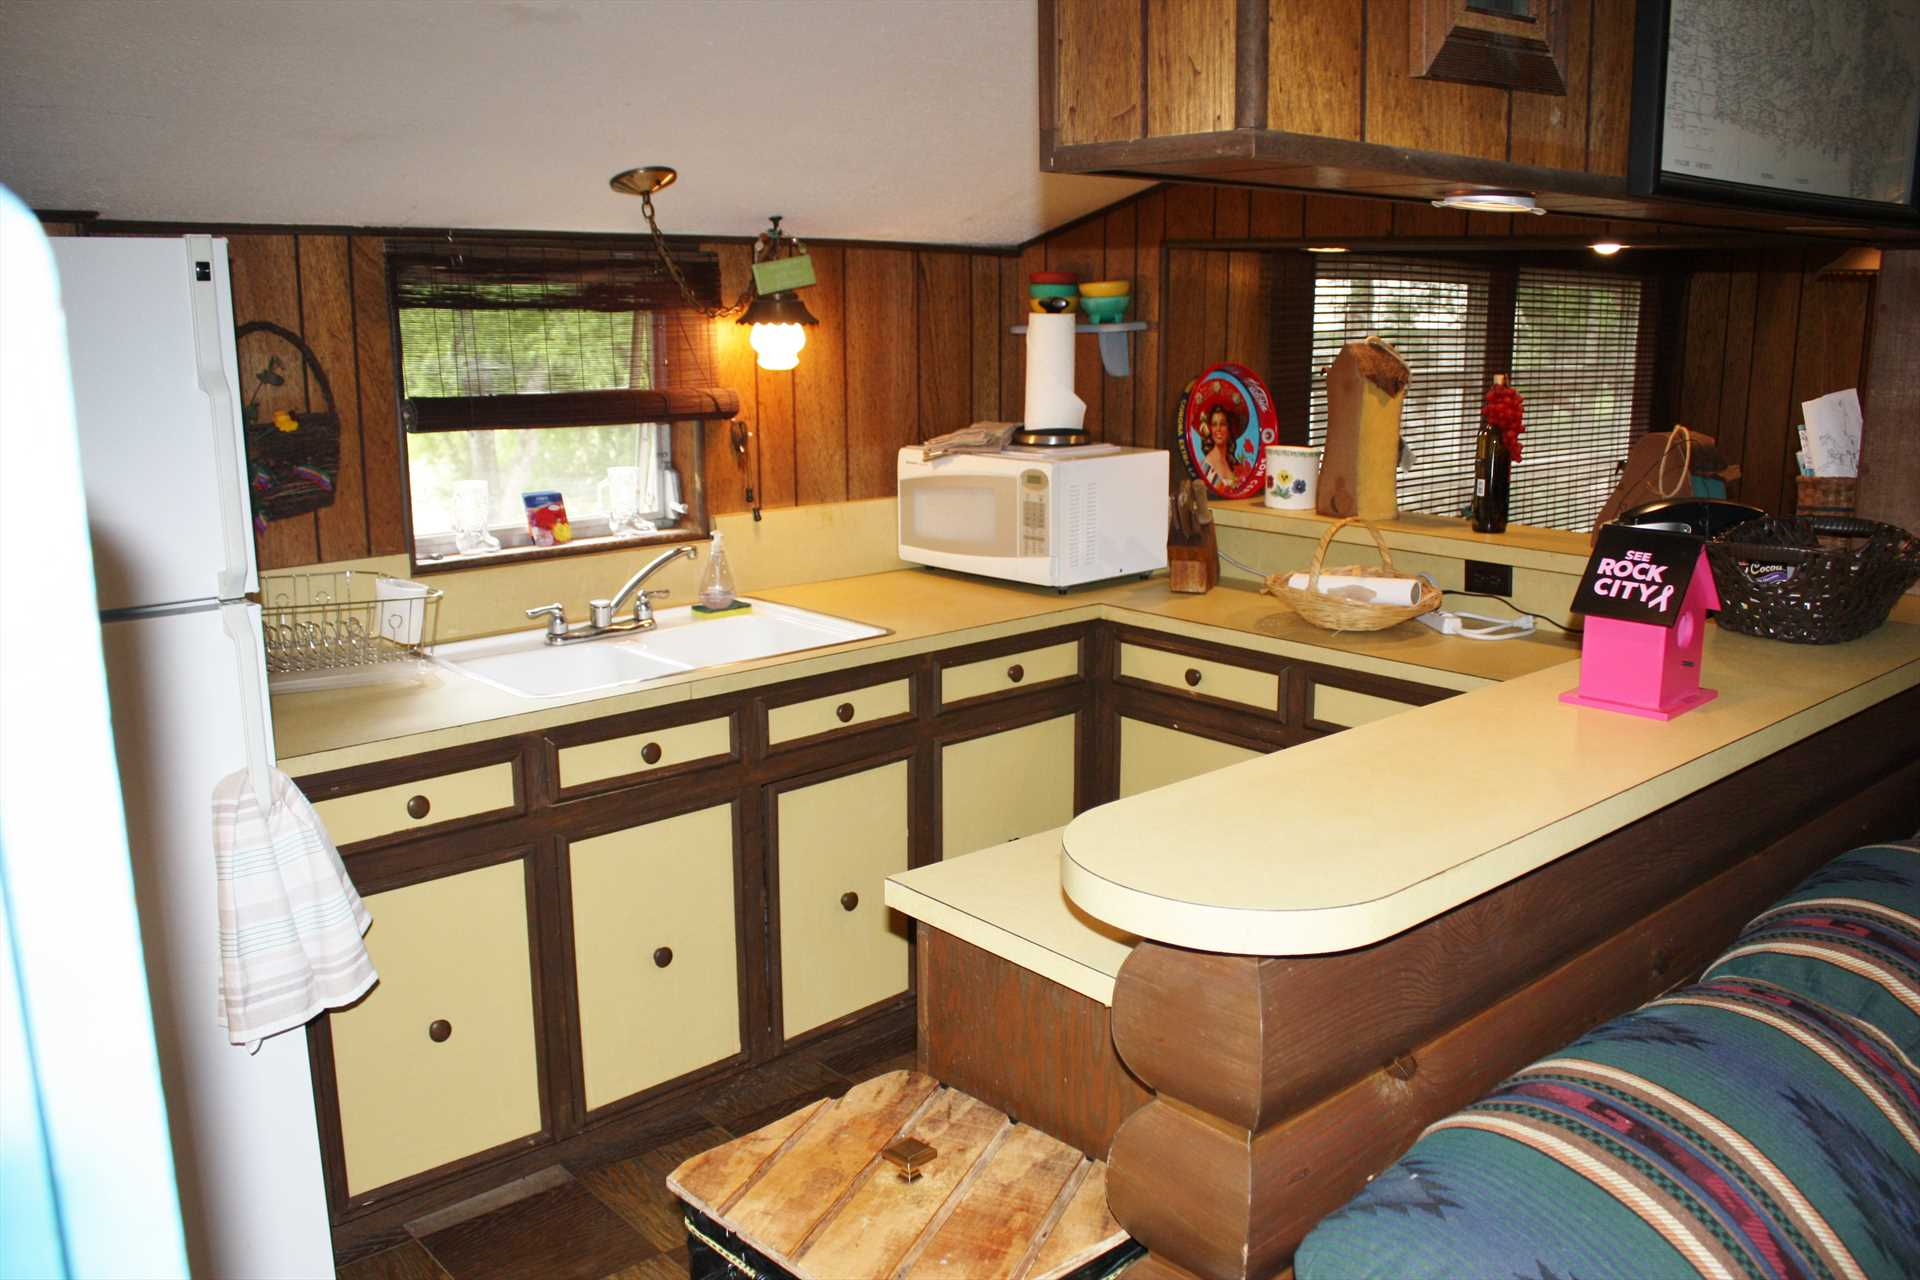 Fully decked out with appliances, the country kitchen also includes cooking ware, utensils, serving ware, dishes, and glasses.